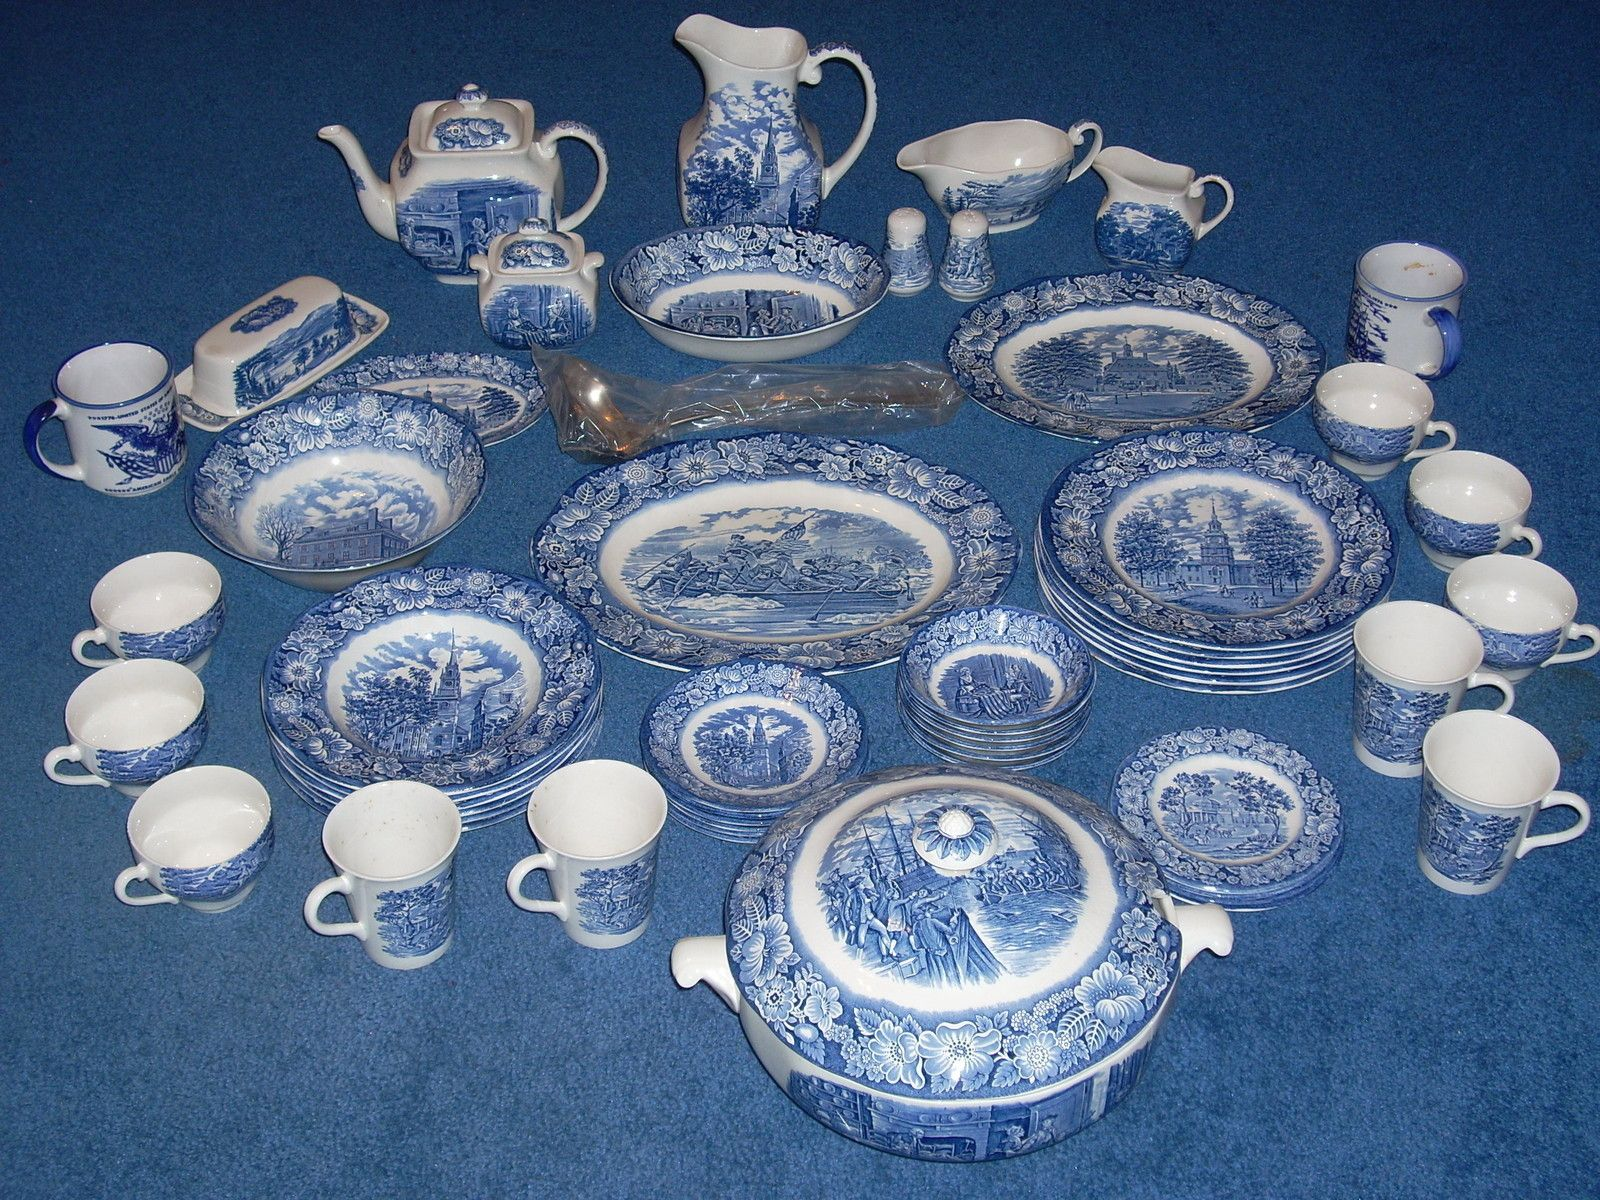 Liberty Blue Bicentennial Staffordshire China Complete Set Historic Colonial Ebay